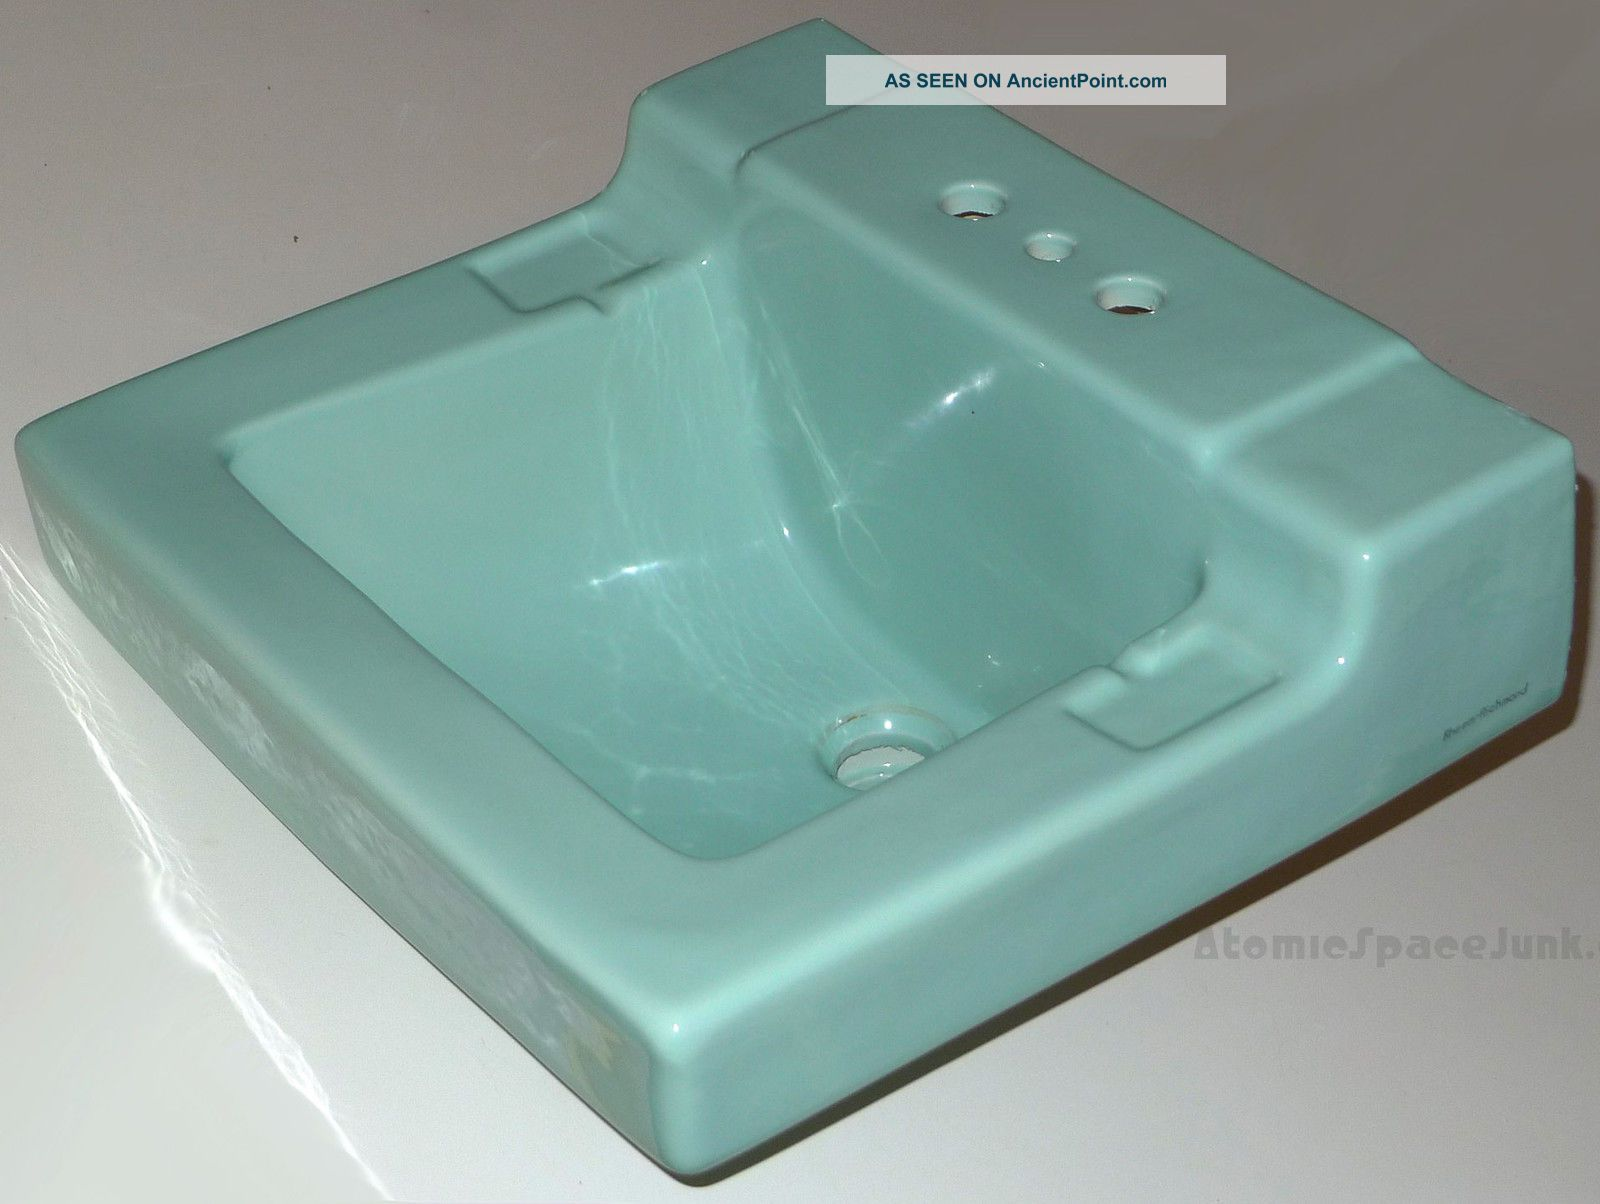 Mid - Century Bathroom Sink Turquoise Blue Rheem - Richmond Vintage Lavatory 1950 ' S Sinks photo